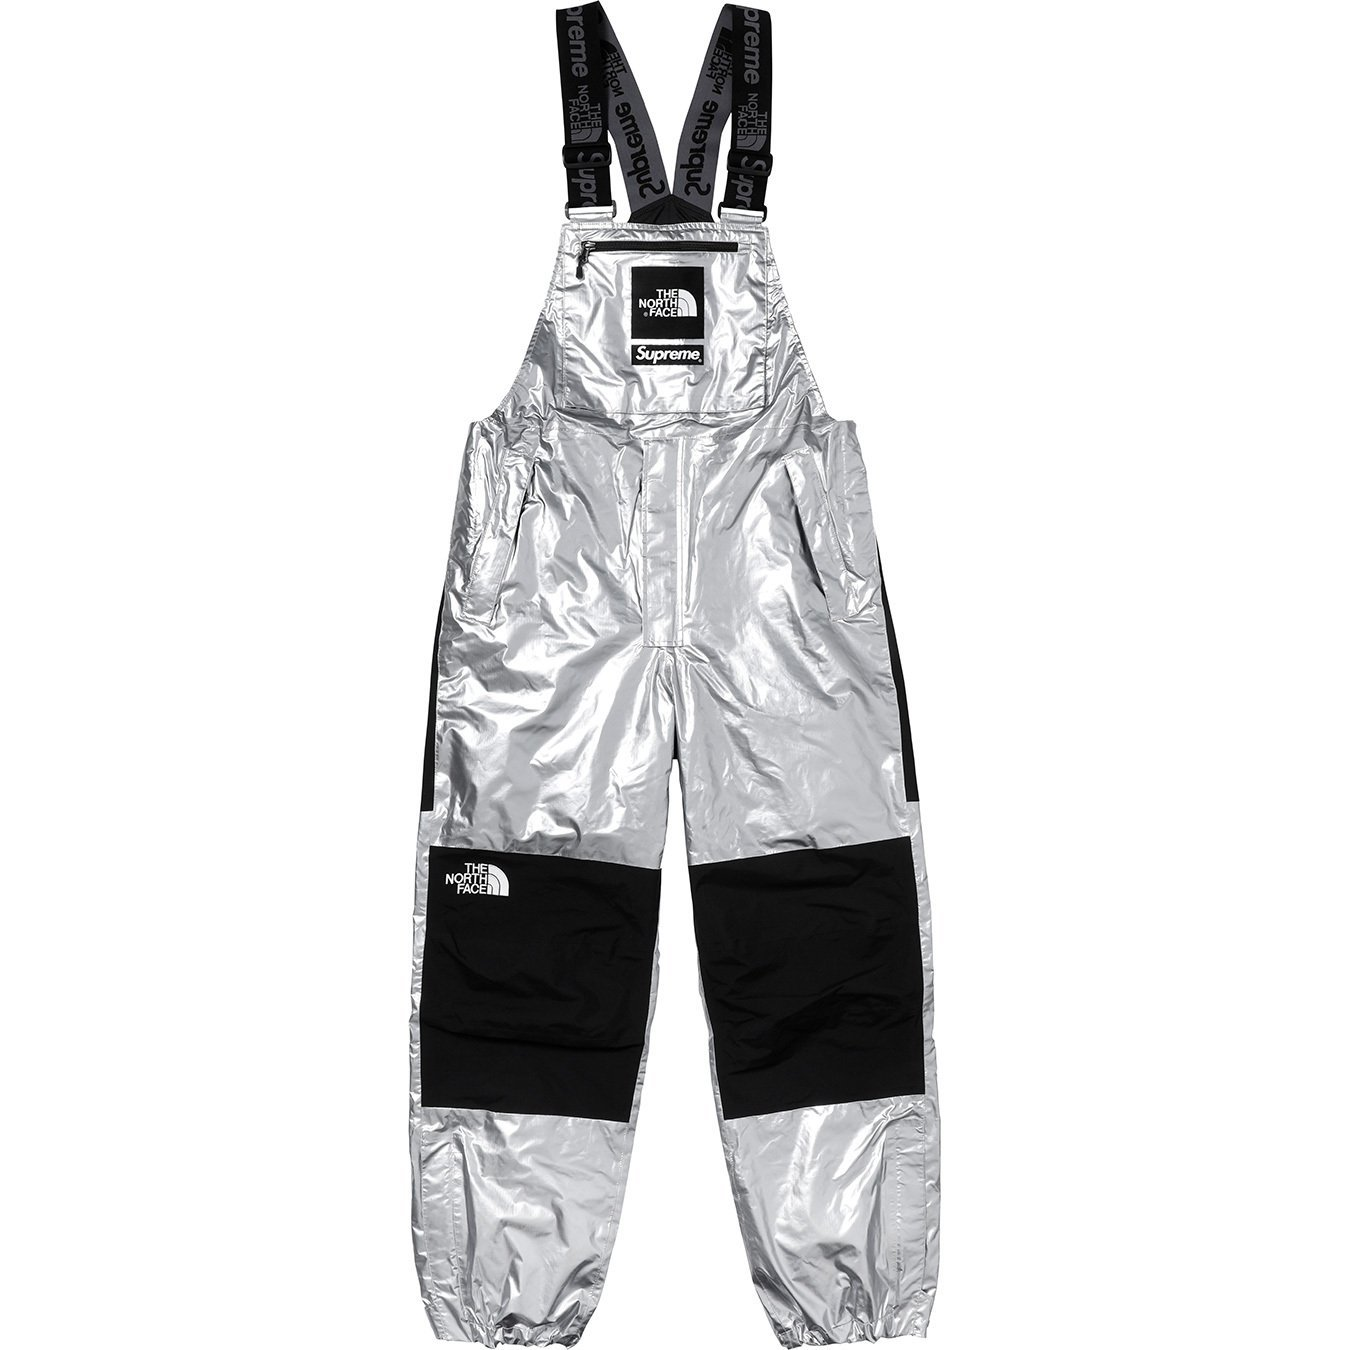 supreme-the-north-face-18ss-release-week7-20180407-metallic-bib-pants